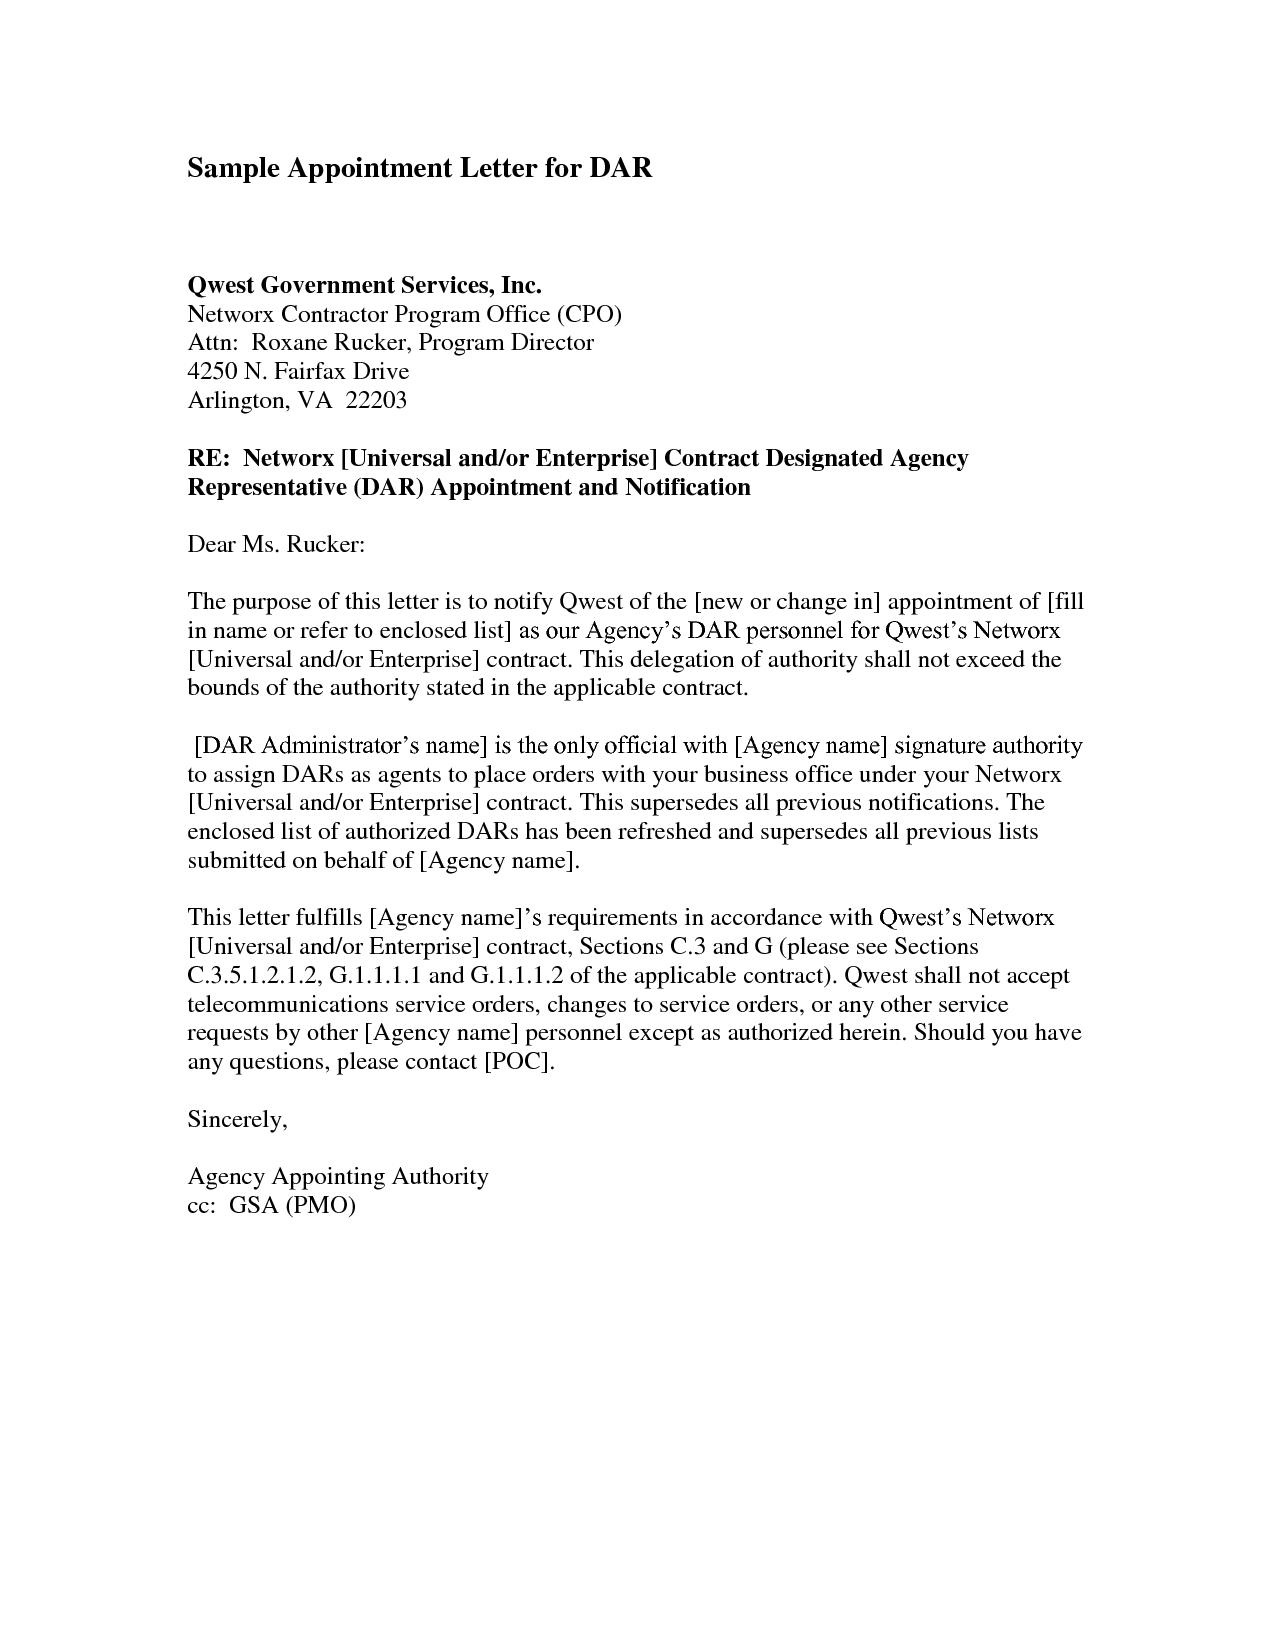 Fundraiser Proposal Letter Template - Trustee Appointment Letter Director Trustee is Appointed or